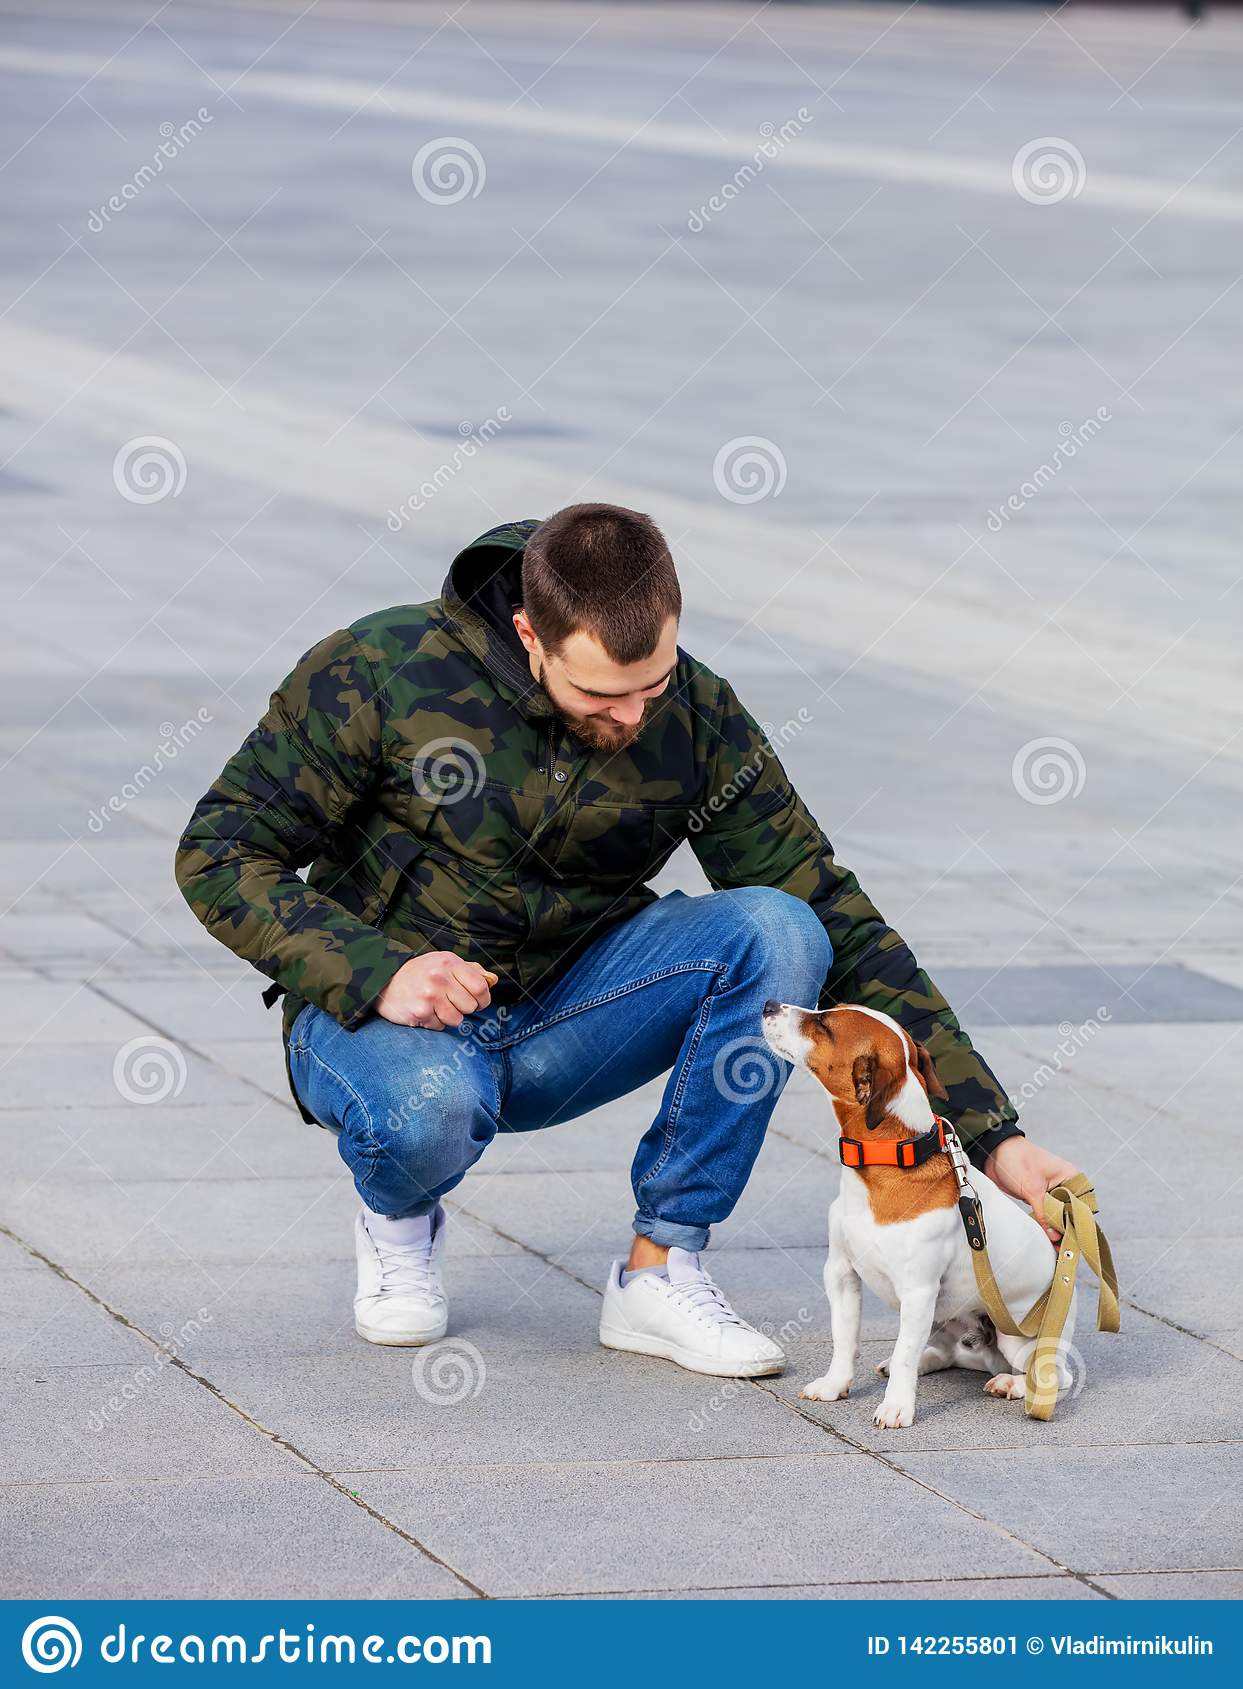 Man with his dog, Jack Russell Terrier, on the city street